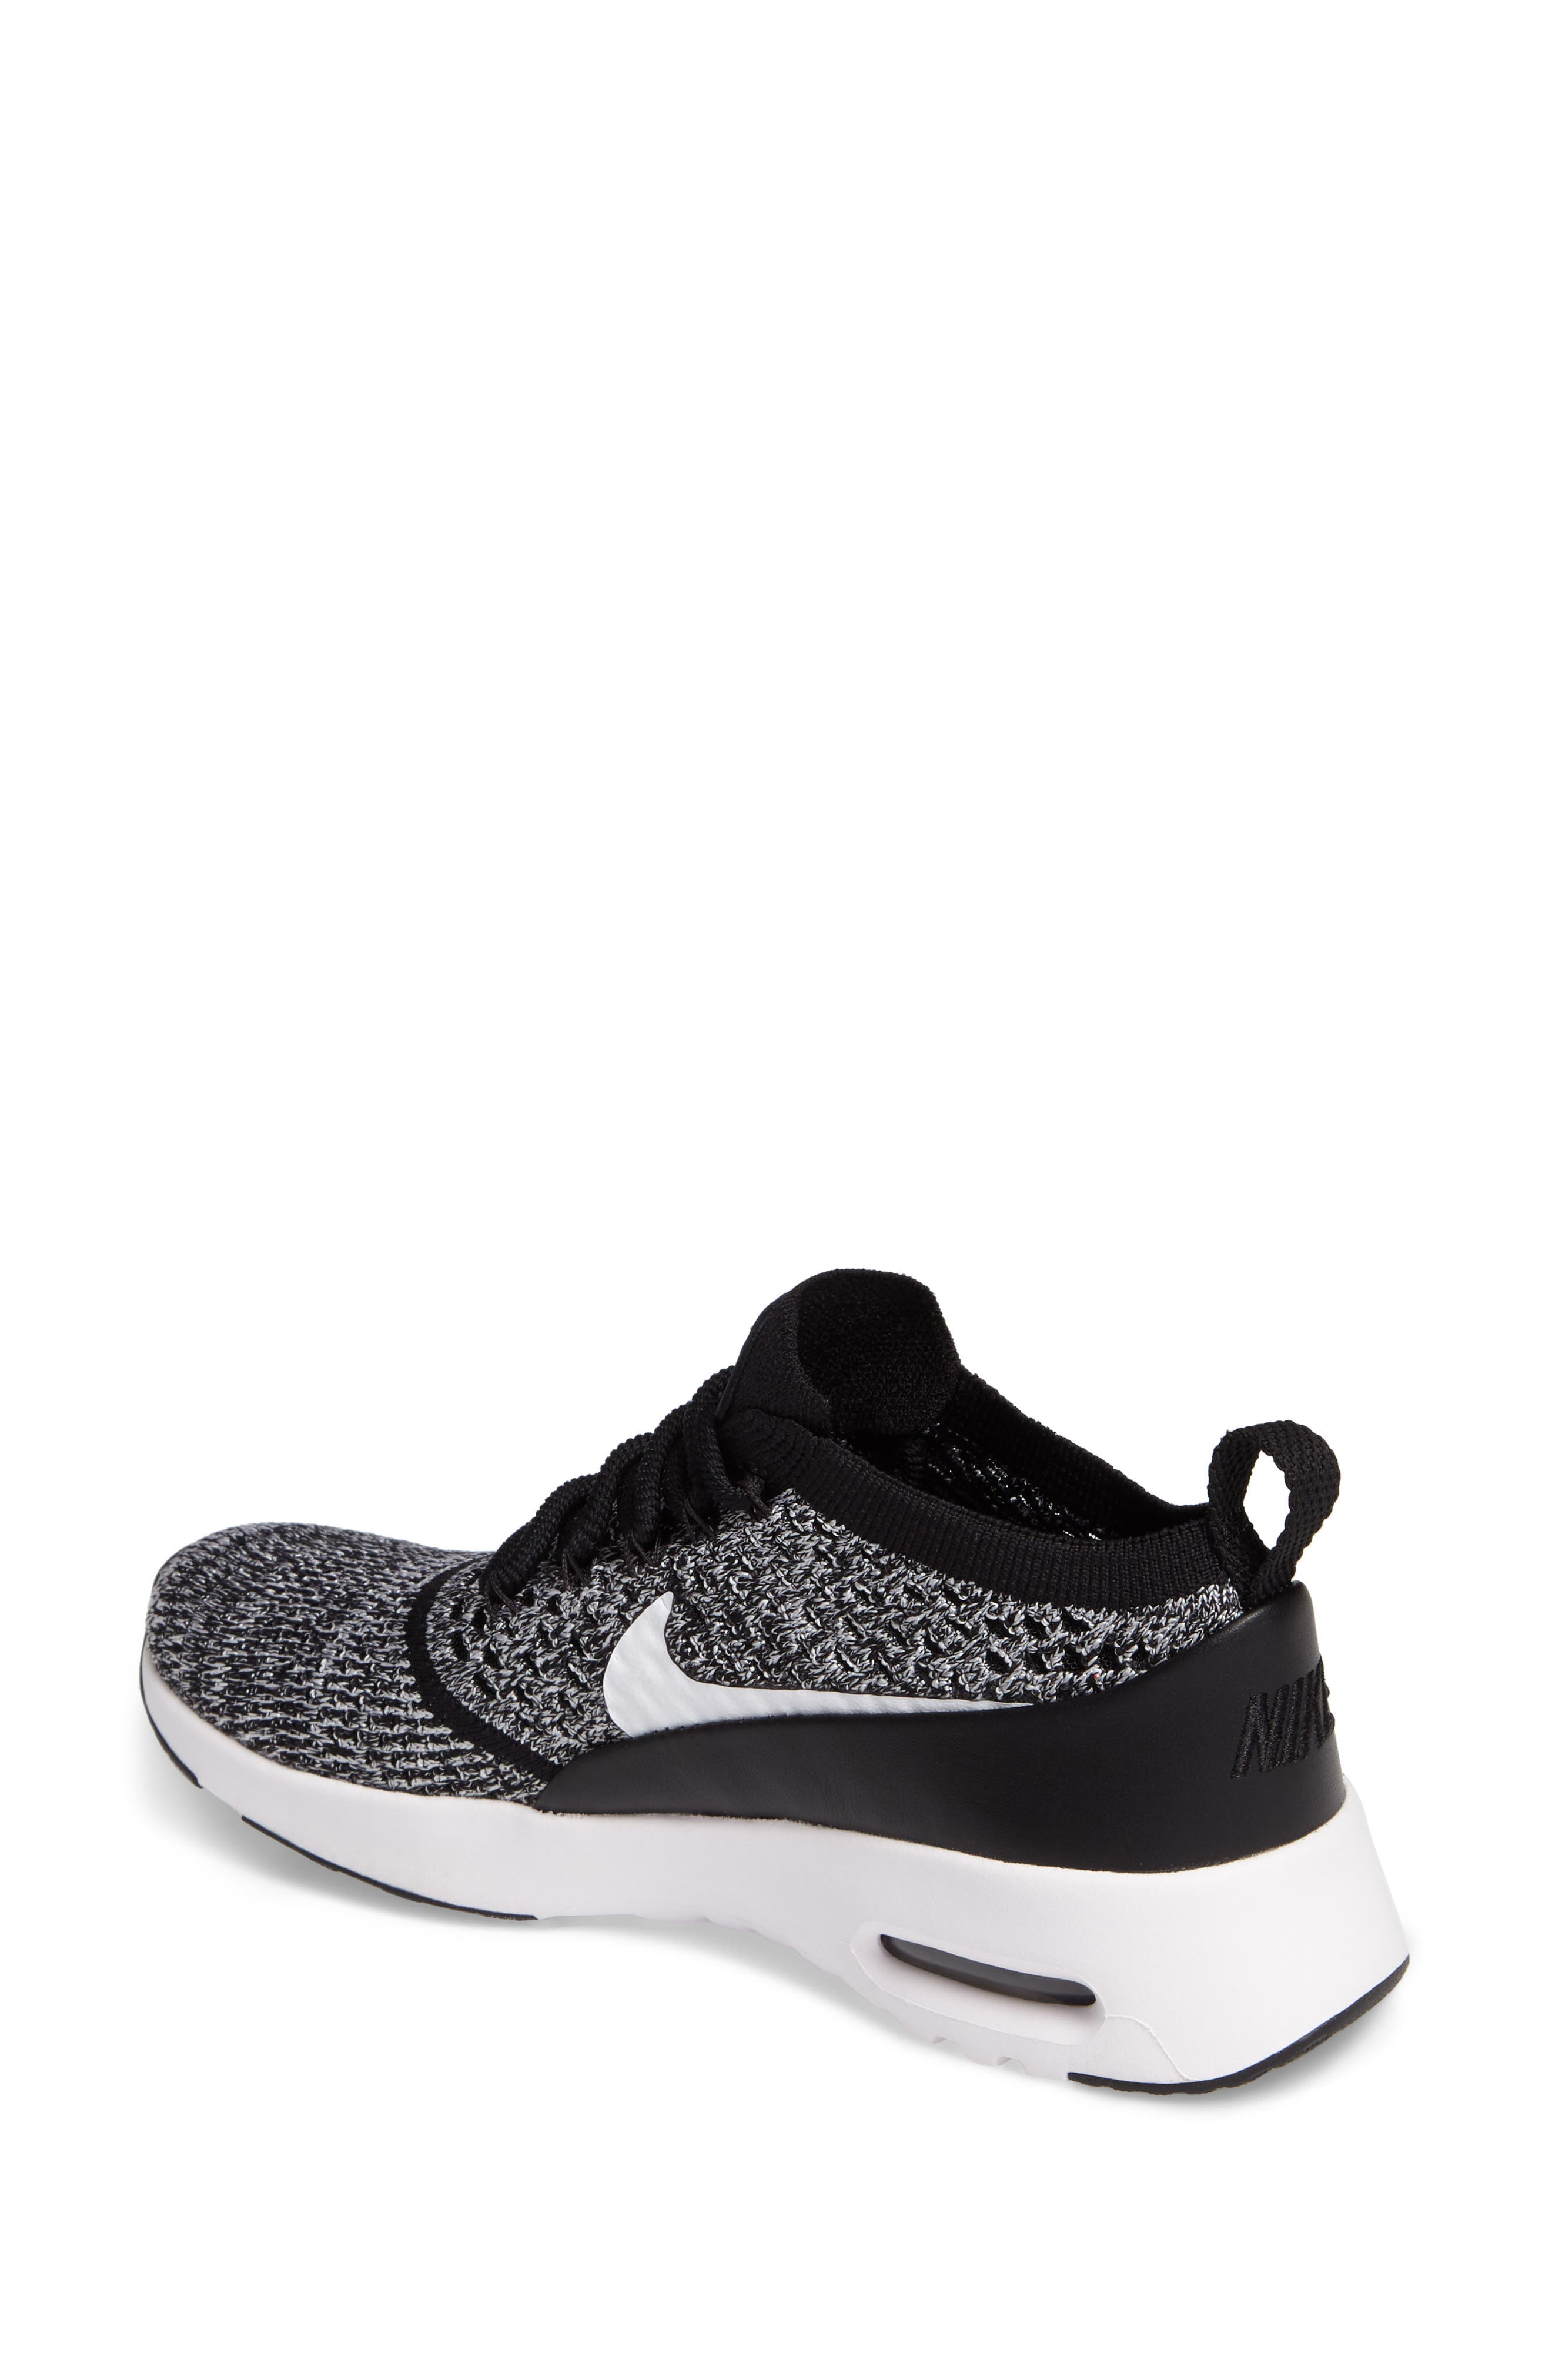 Alternate Image 2  - Nike Air Max Thea Ultra Flyknit Sneaker (Women)